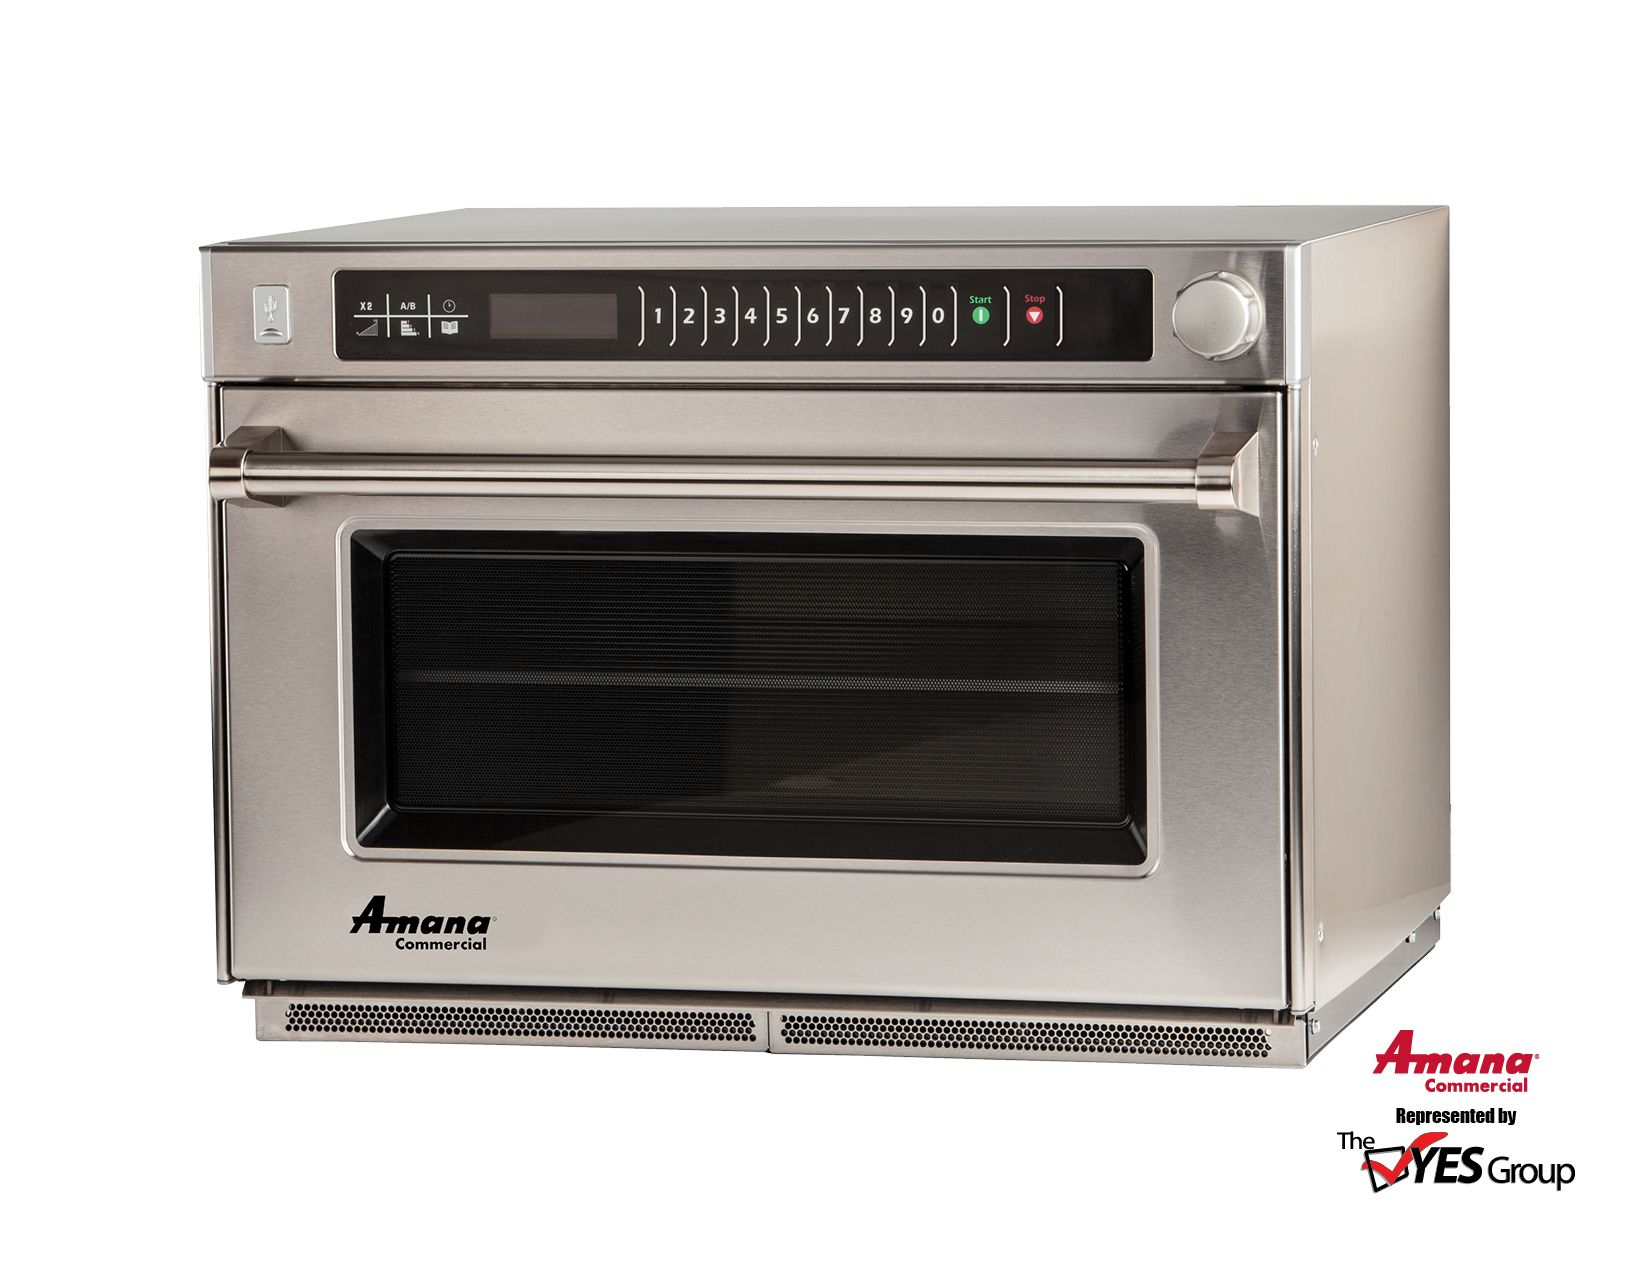 Amso35 By Amana Commercial Microwave Oven Cooking Equipment